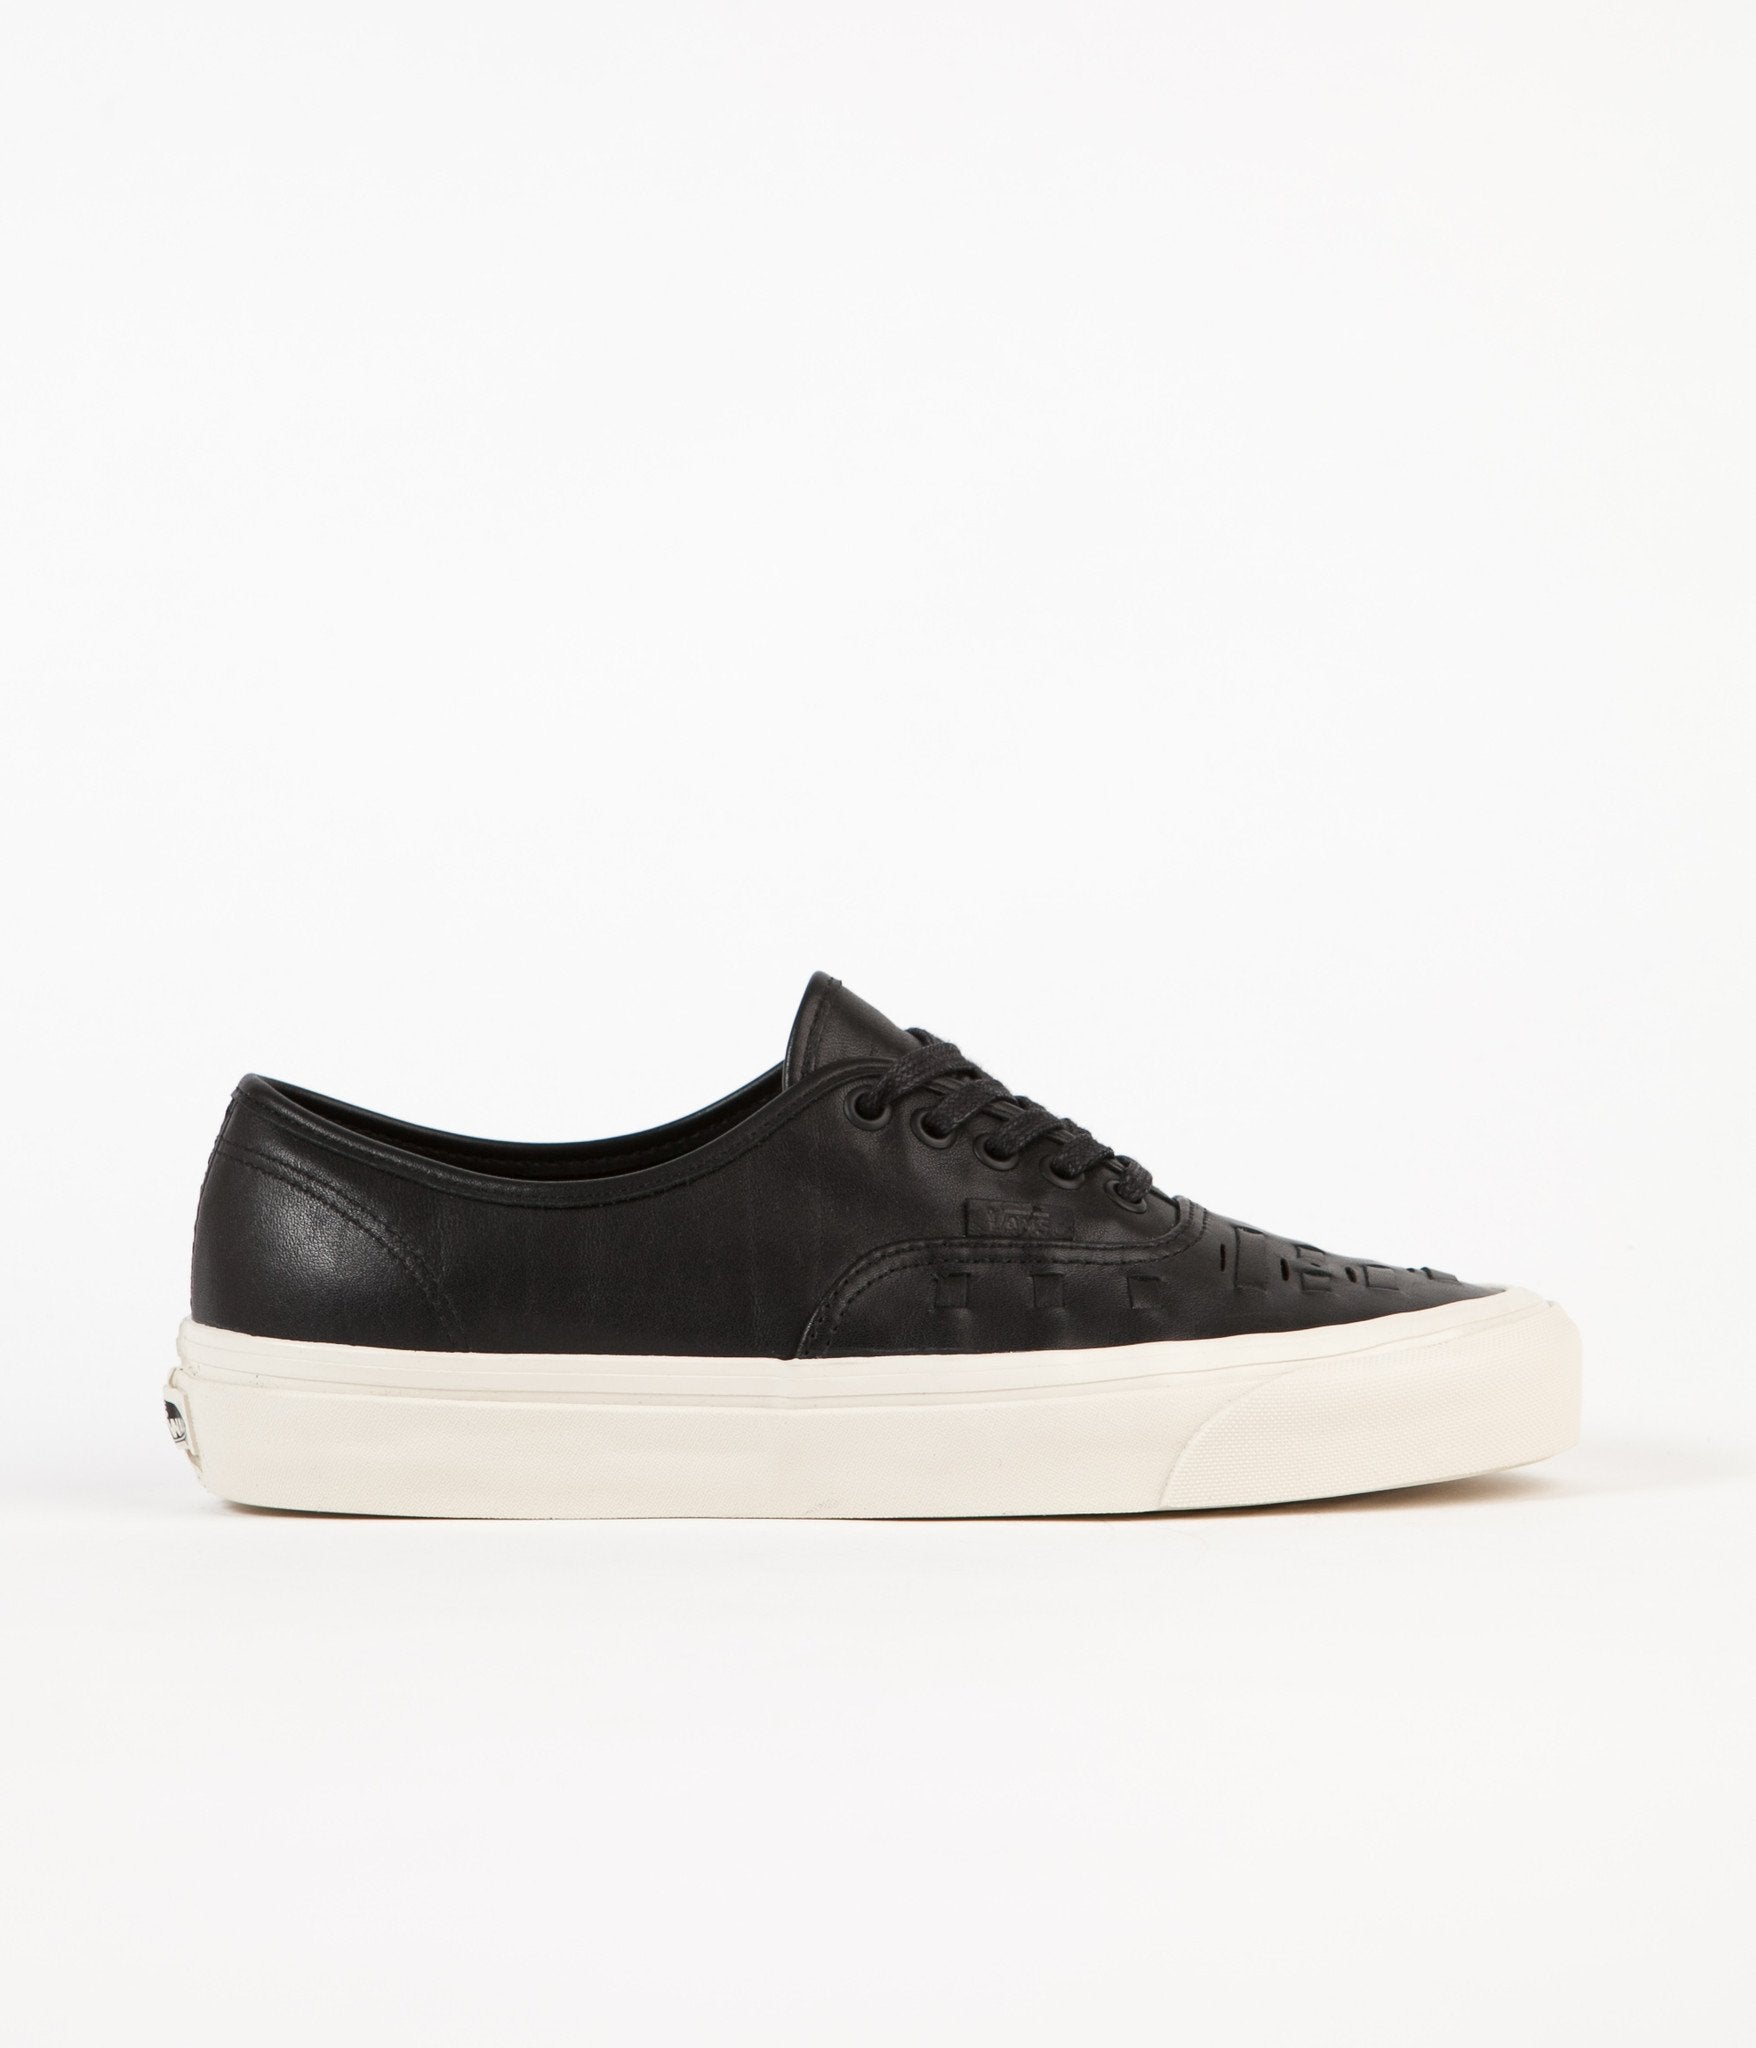 65bc484de7 ... Vans Authentic Weave DX Leather Shoes - Black ...